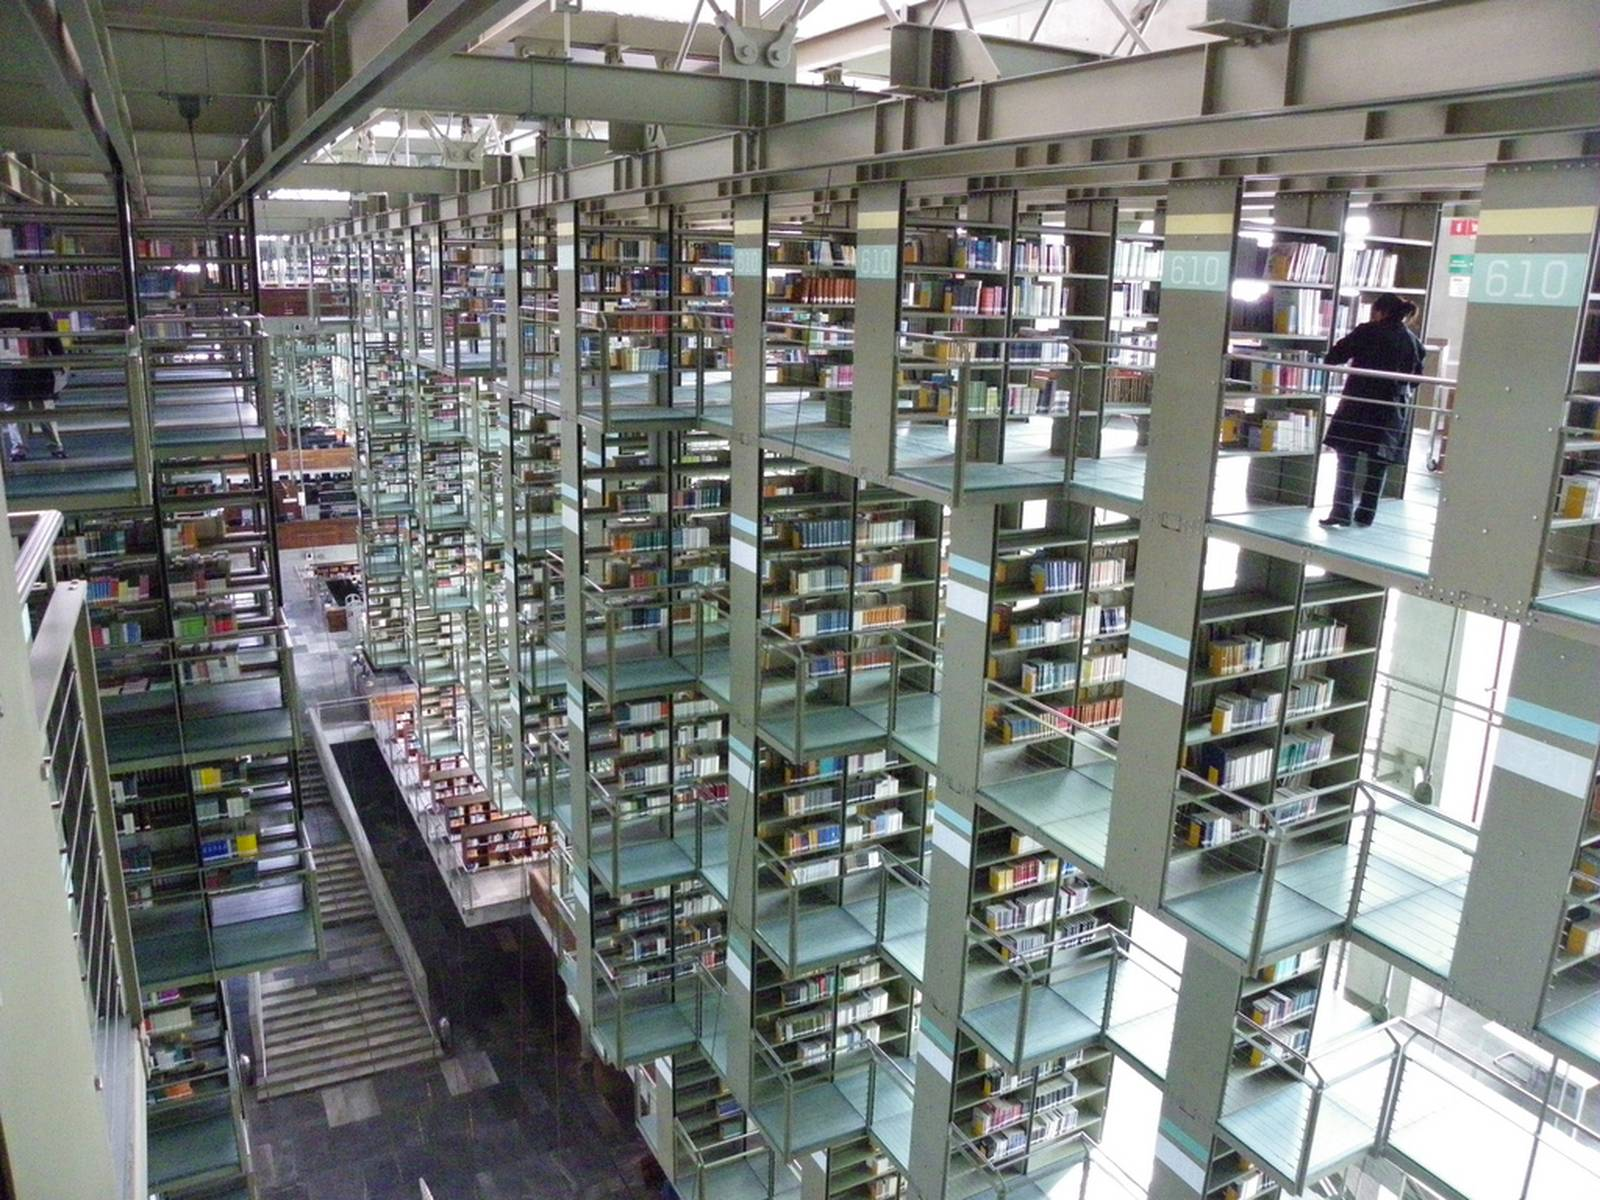 biblioteca vasconcelos1 Biblioteca Vasconcelos   Public Library in Mexico City